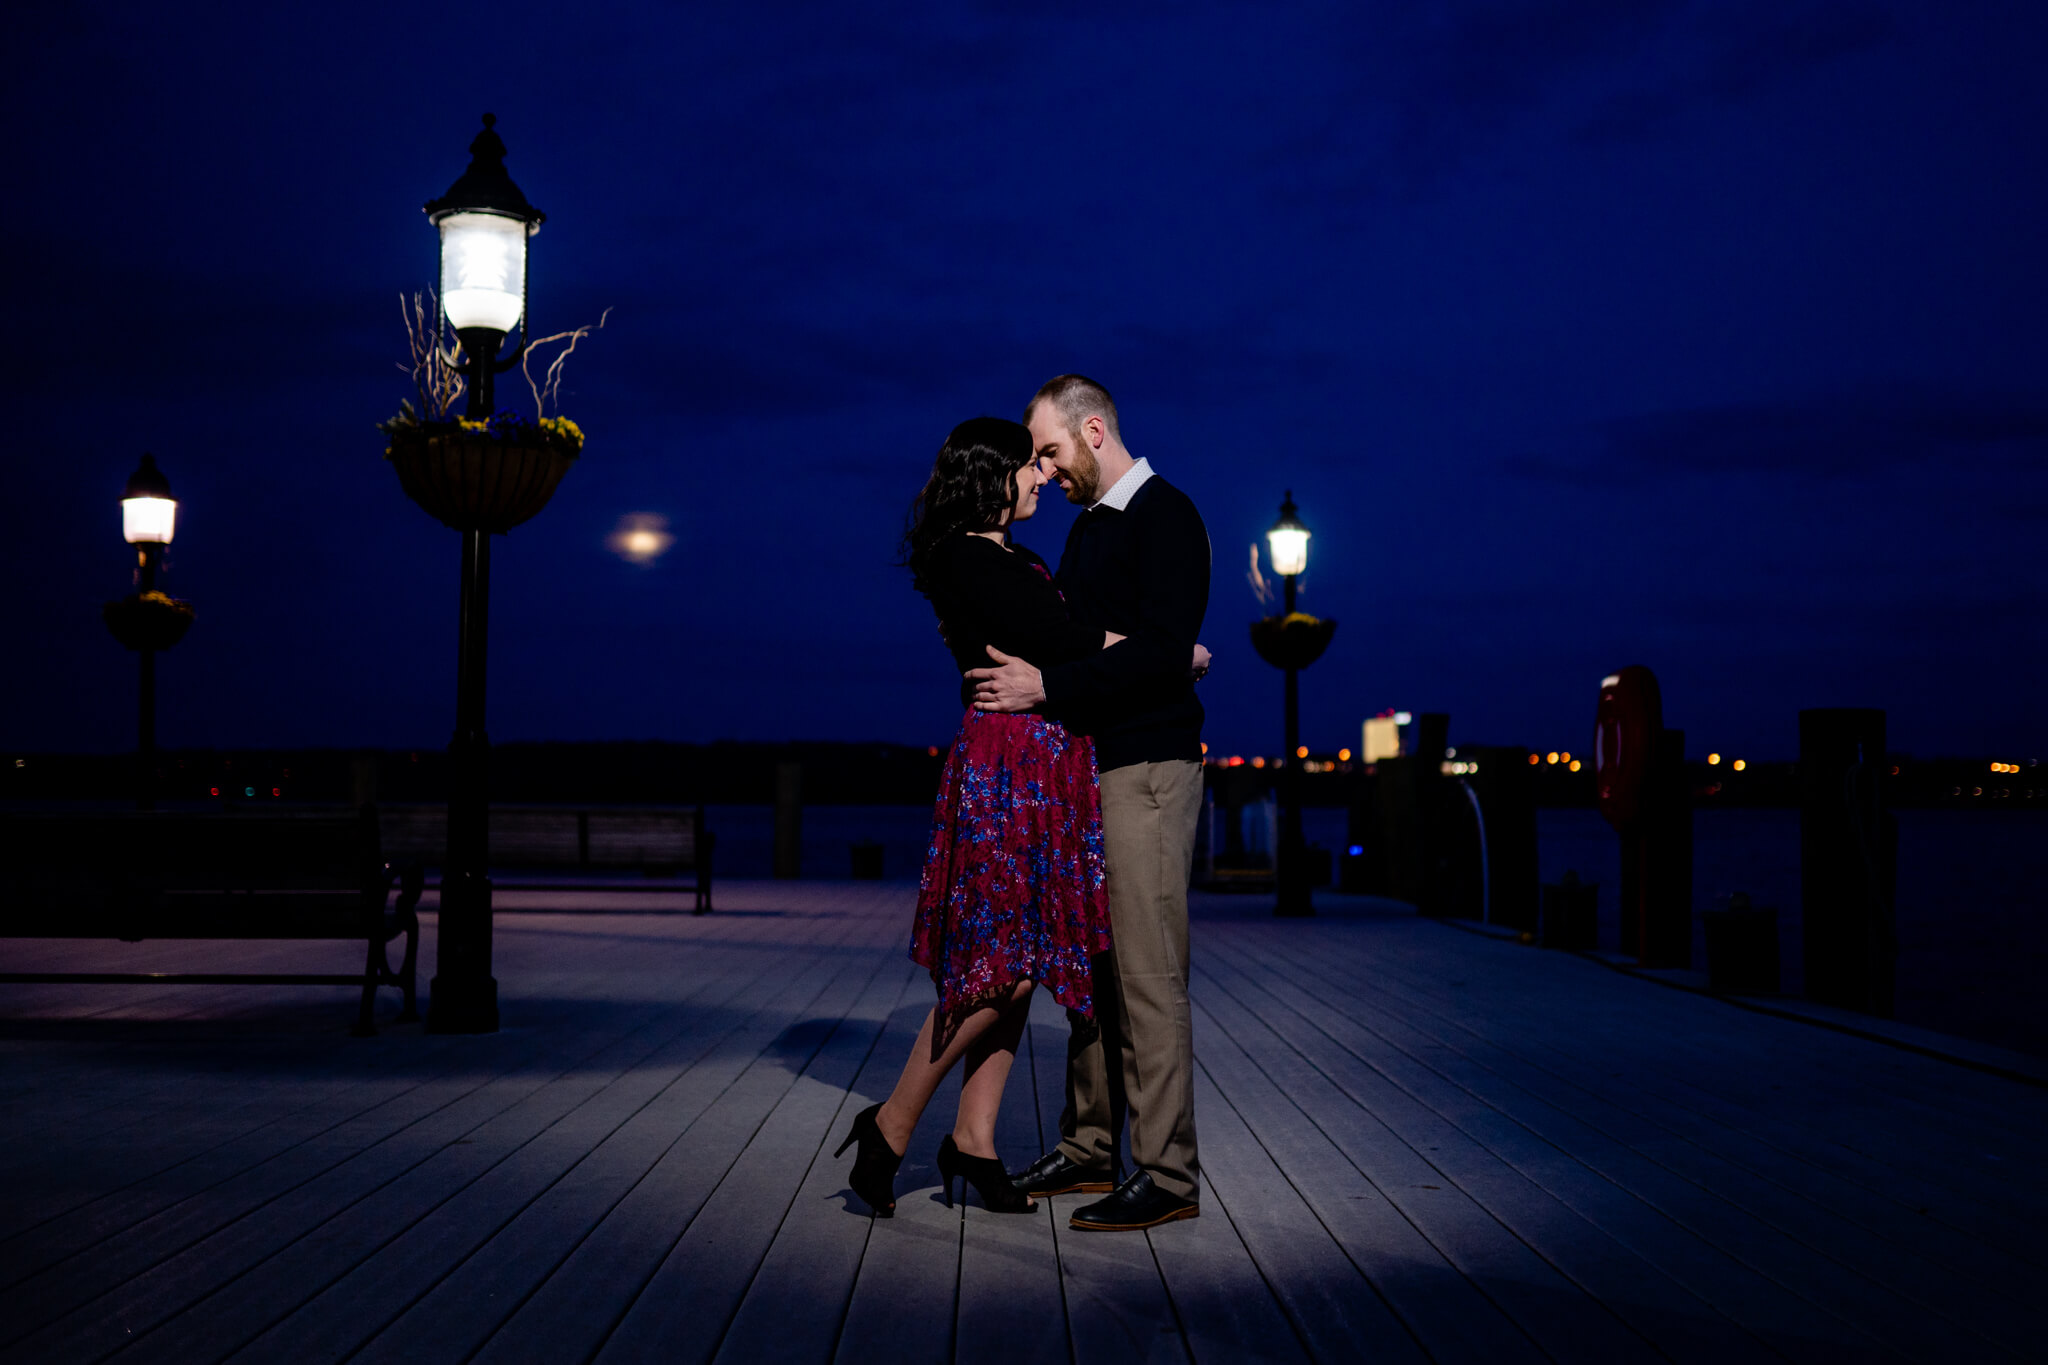 Kelly Matt Old Town Engagement Yellow Wall Alley Prince Street Wilkes Tunnel Alexandria Waterfront-10.jpg